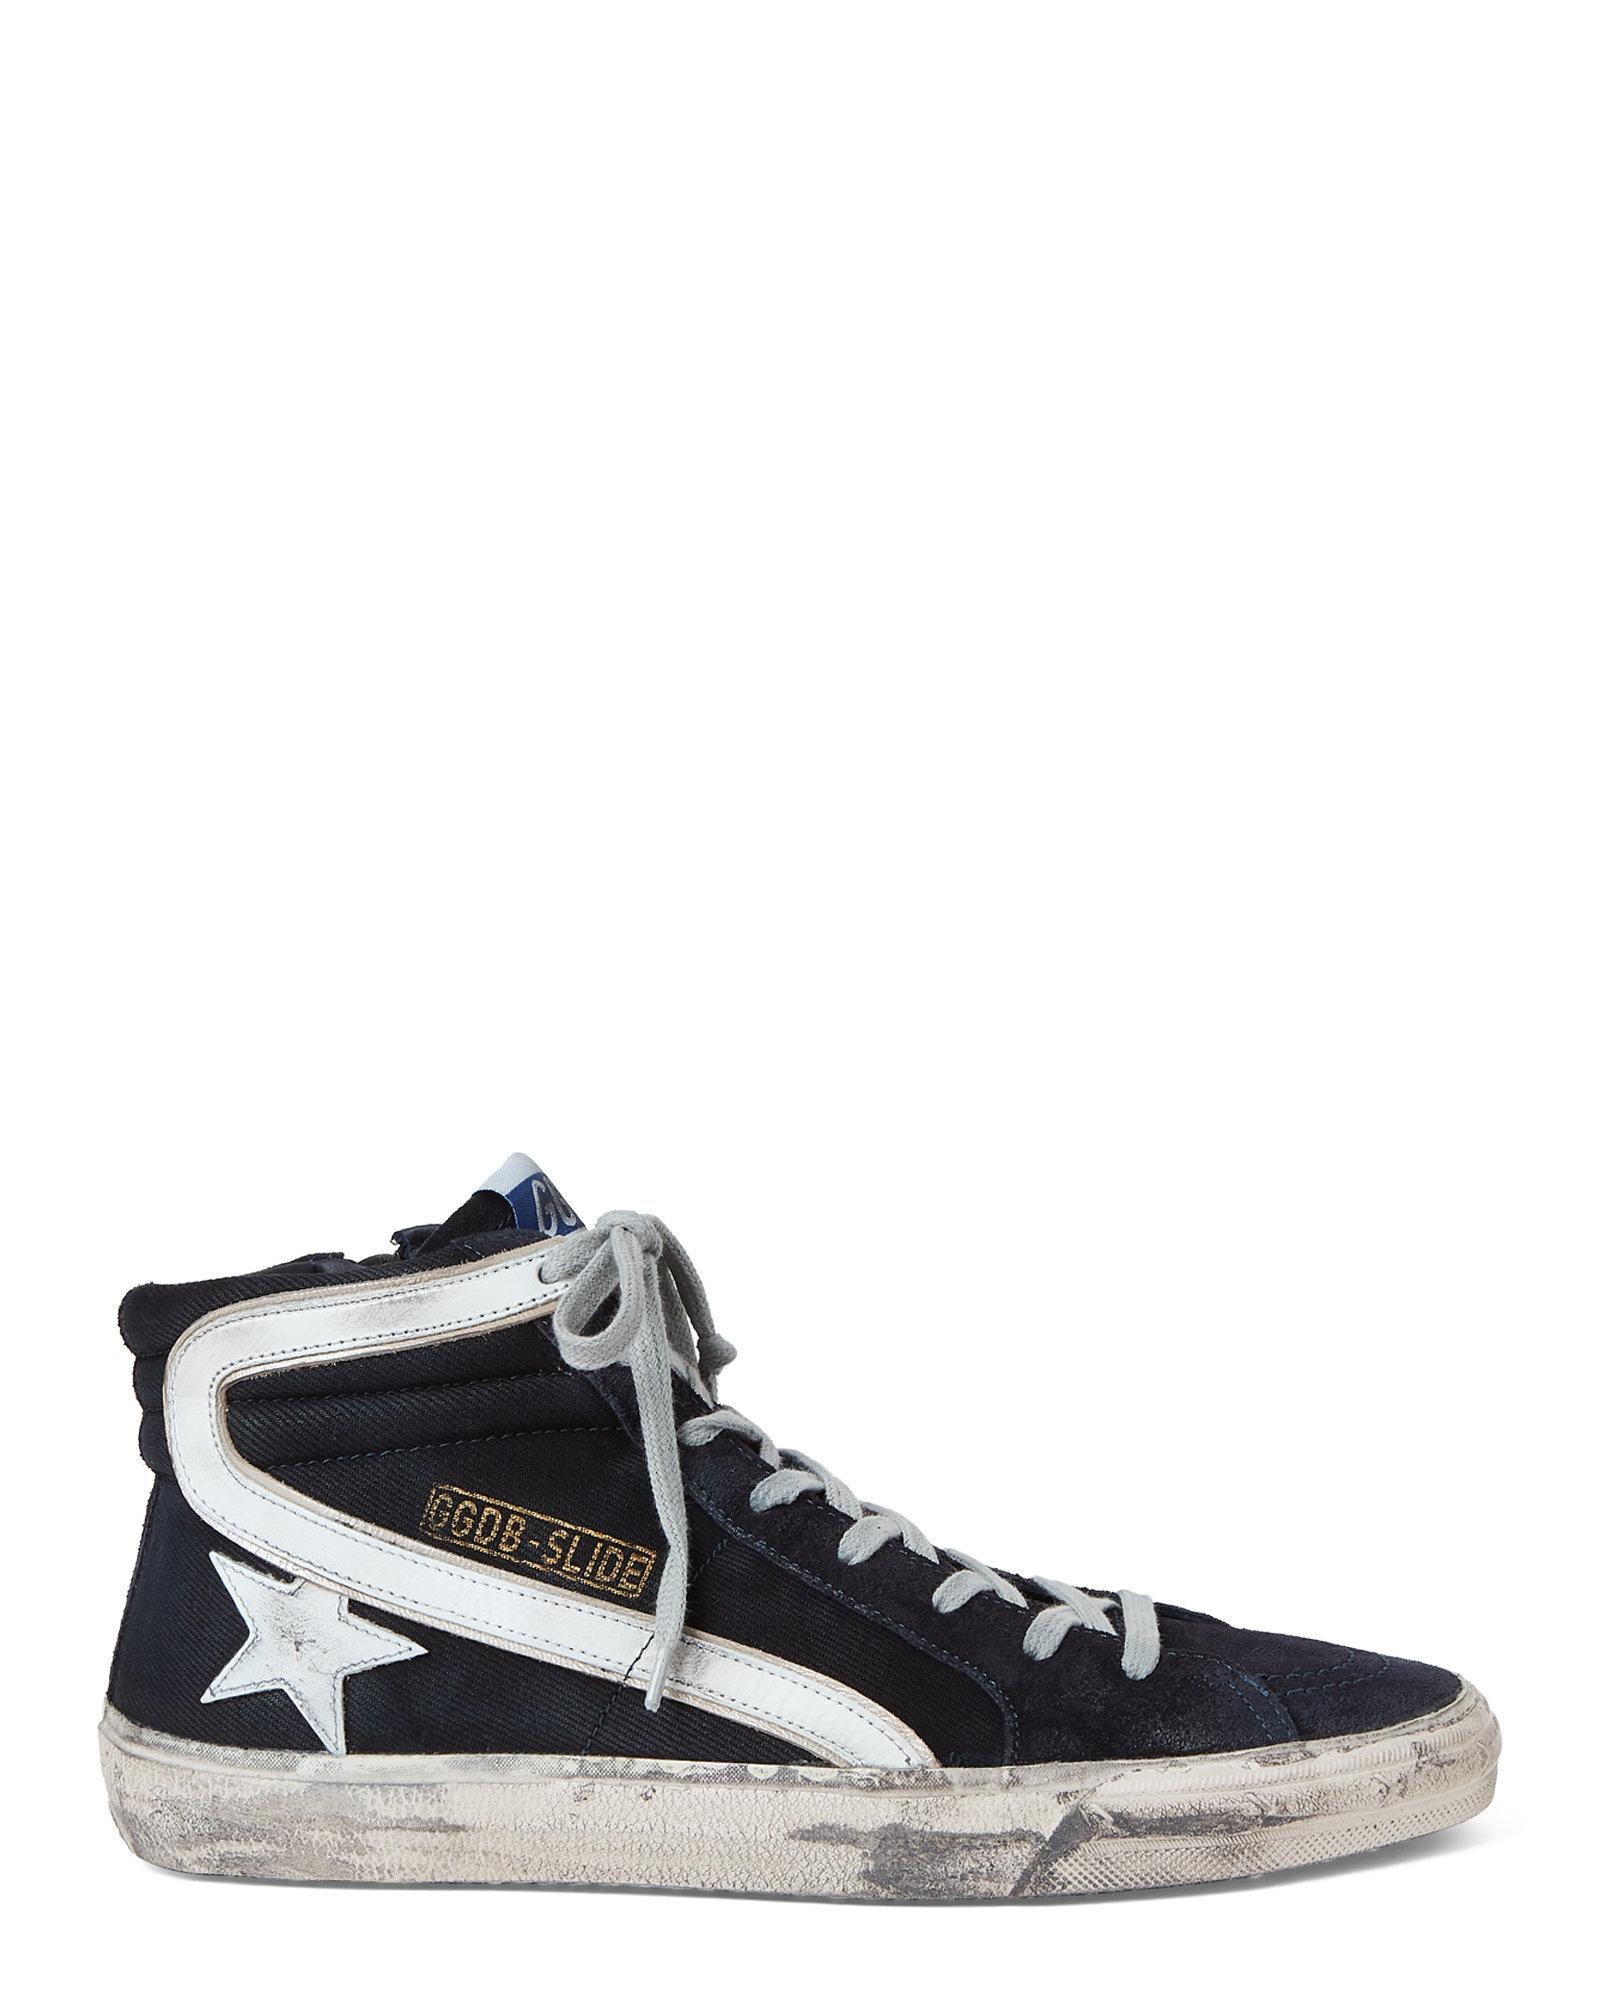 1ac41897fc39a Lyst - Golden Goose Deluxe Brand Navy   White Slide High-top Sneakers in  Blue